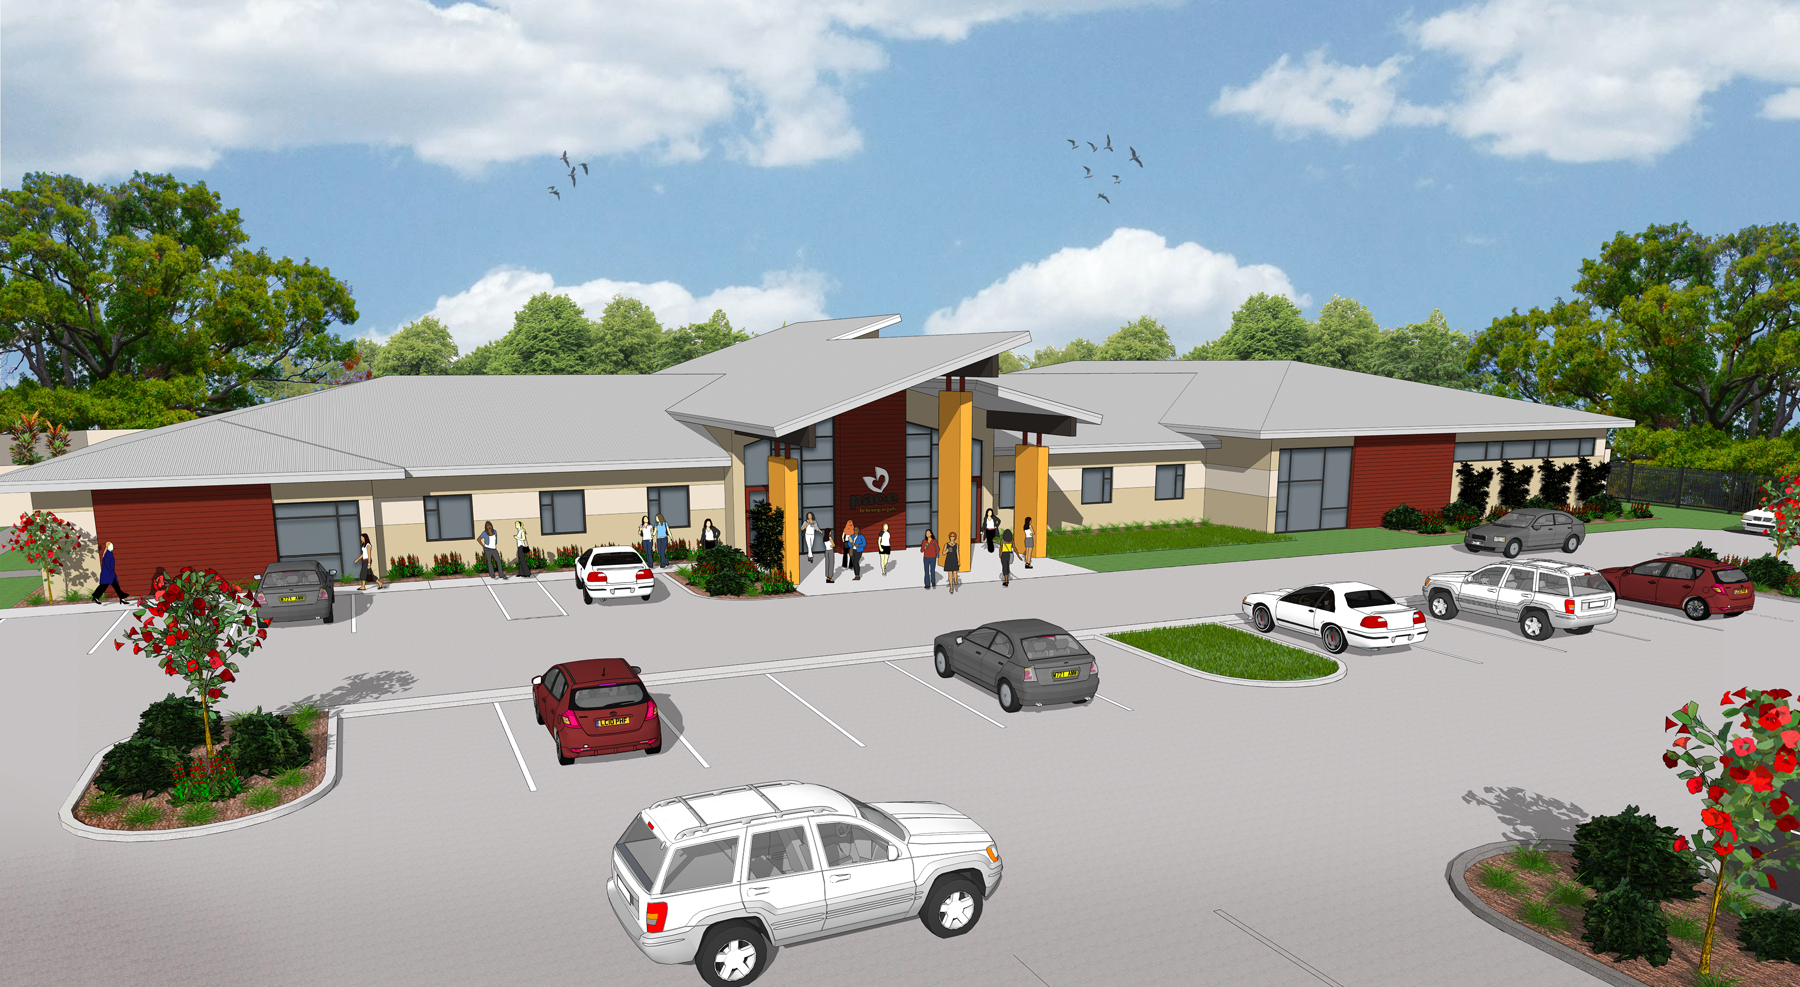 Coming Soon… New Building for PACE Center for Girls